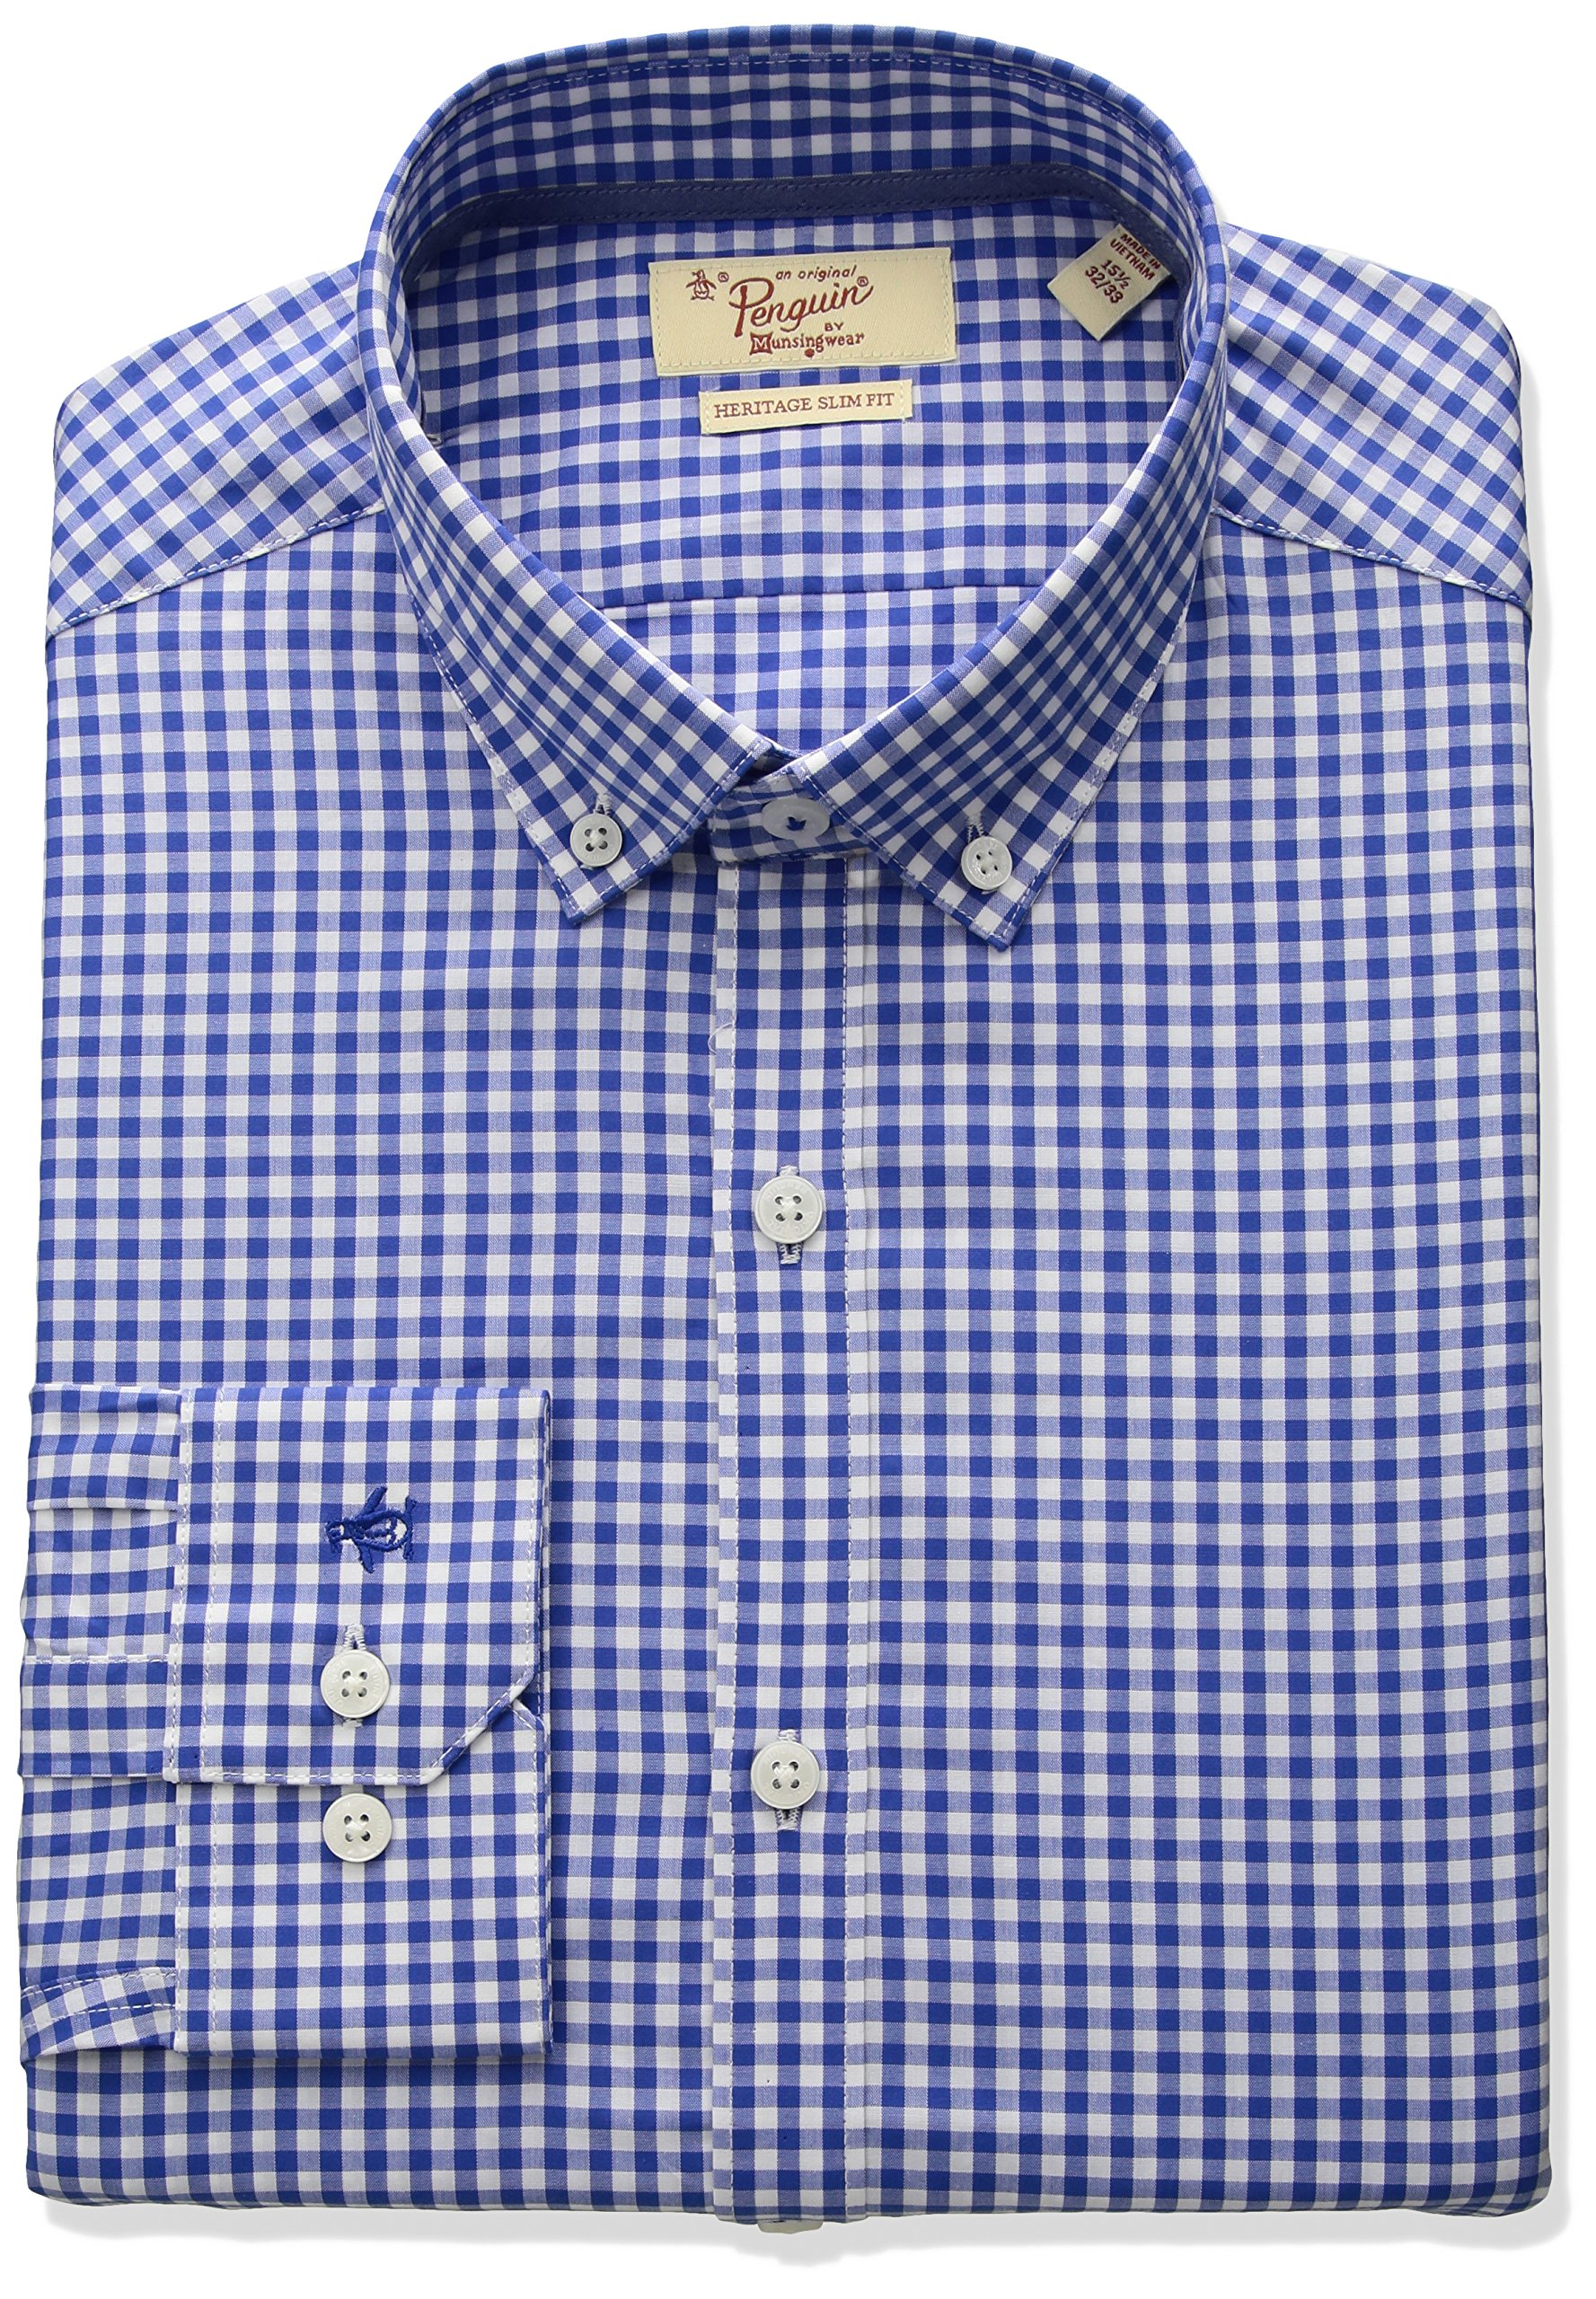 Original Penguin Men's Slim Fit Button Down Collar Dress Shirt, Blue Gingham, 16 34/35